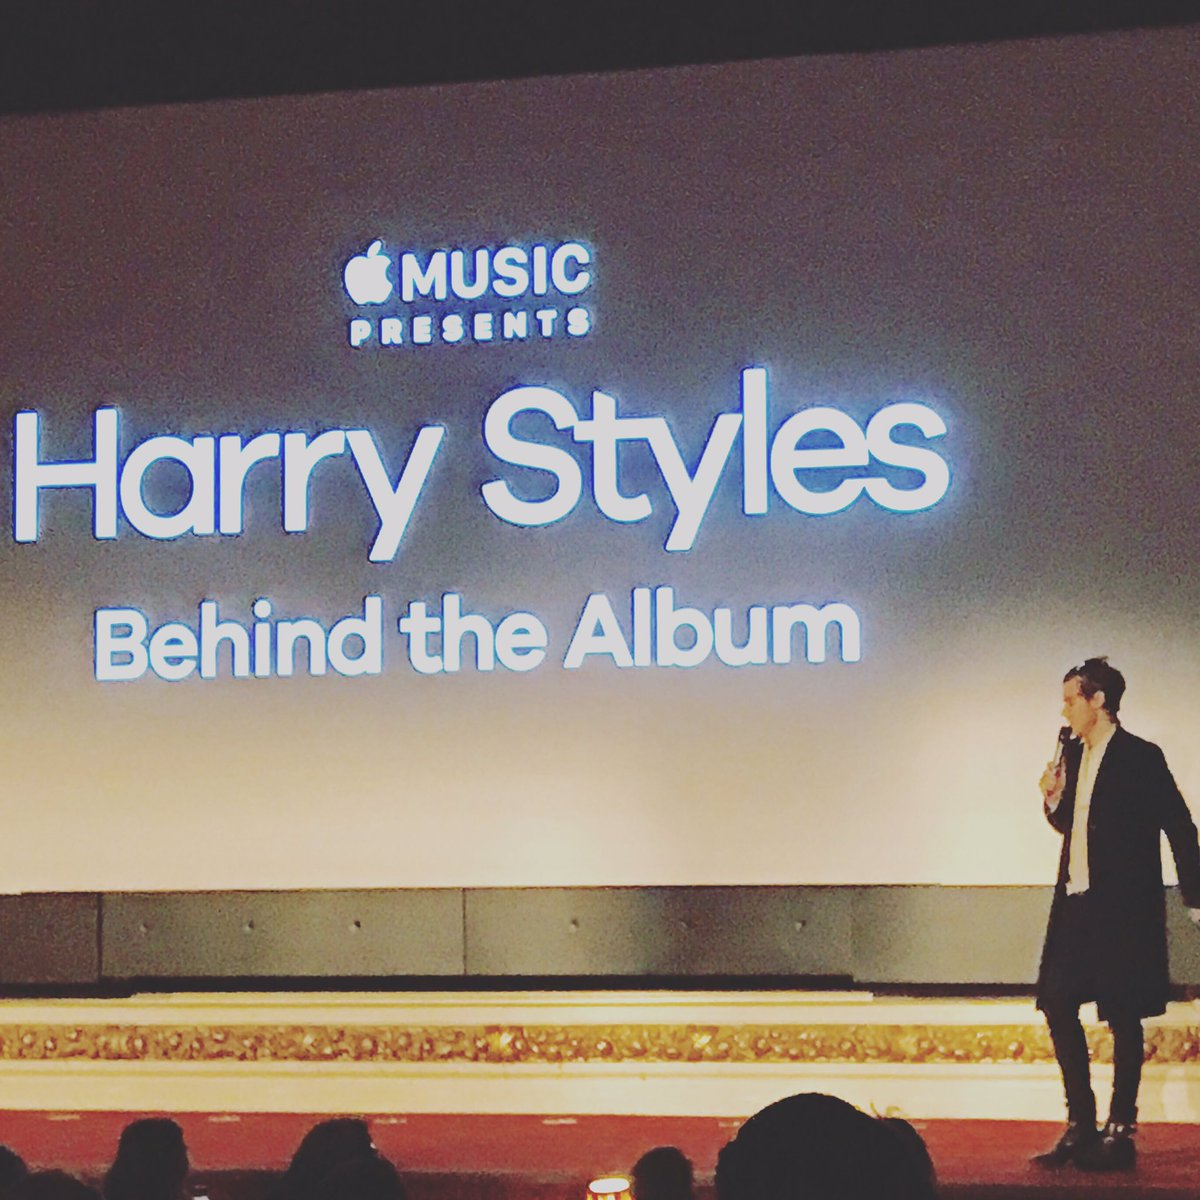 Lovely @Harry_Styles film from those cunning dudes at @Fulwell73. On @AppleMusic from Monday. Look out for Mitch... https://t.co/AUnDy78vbb